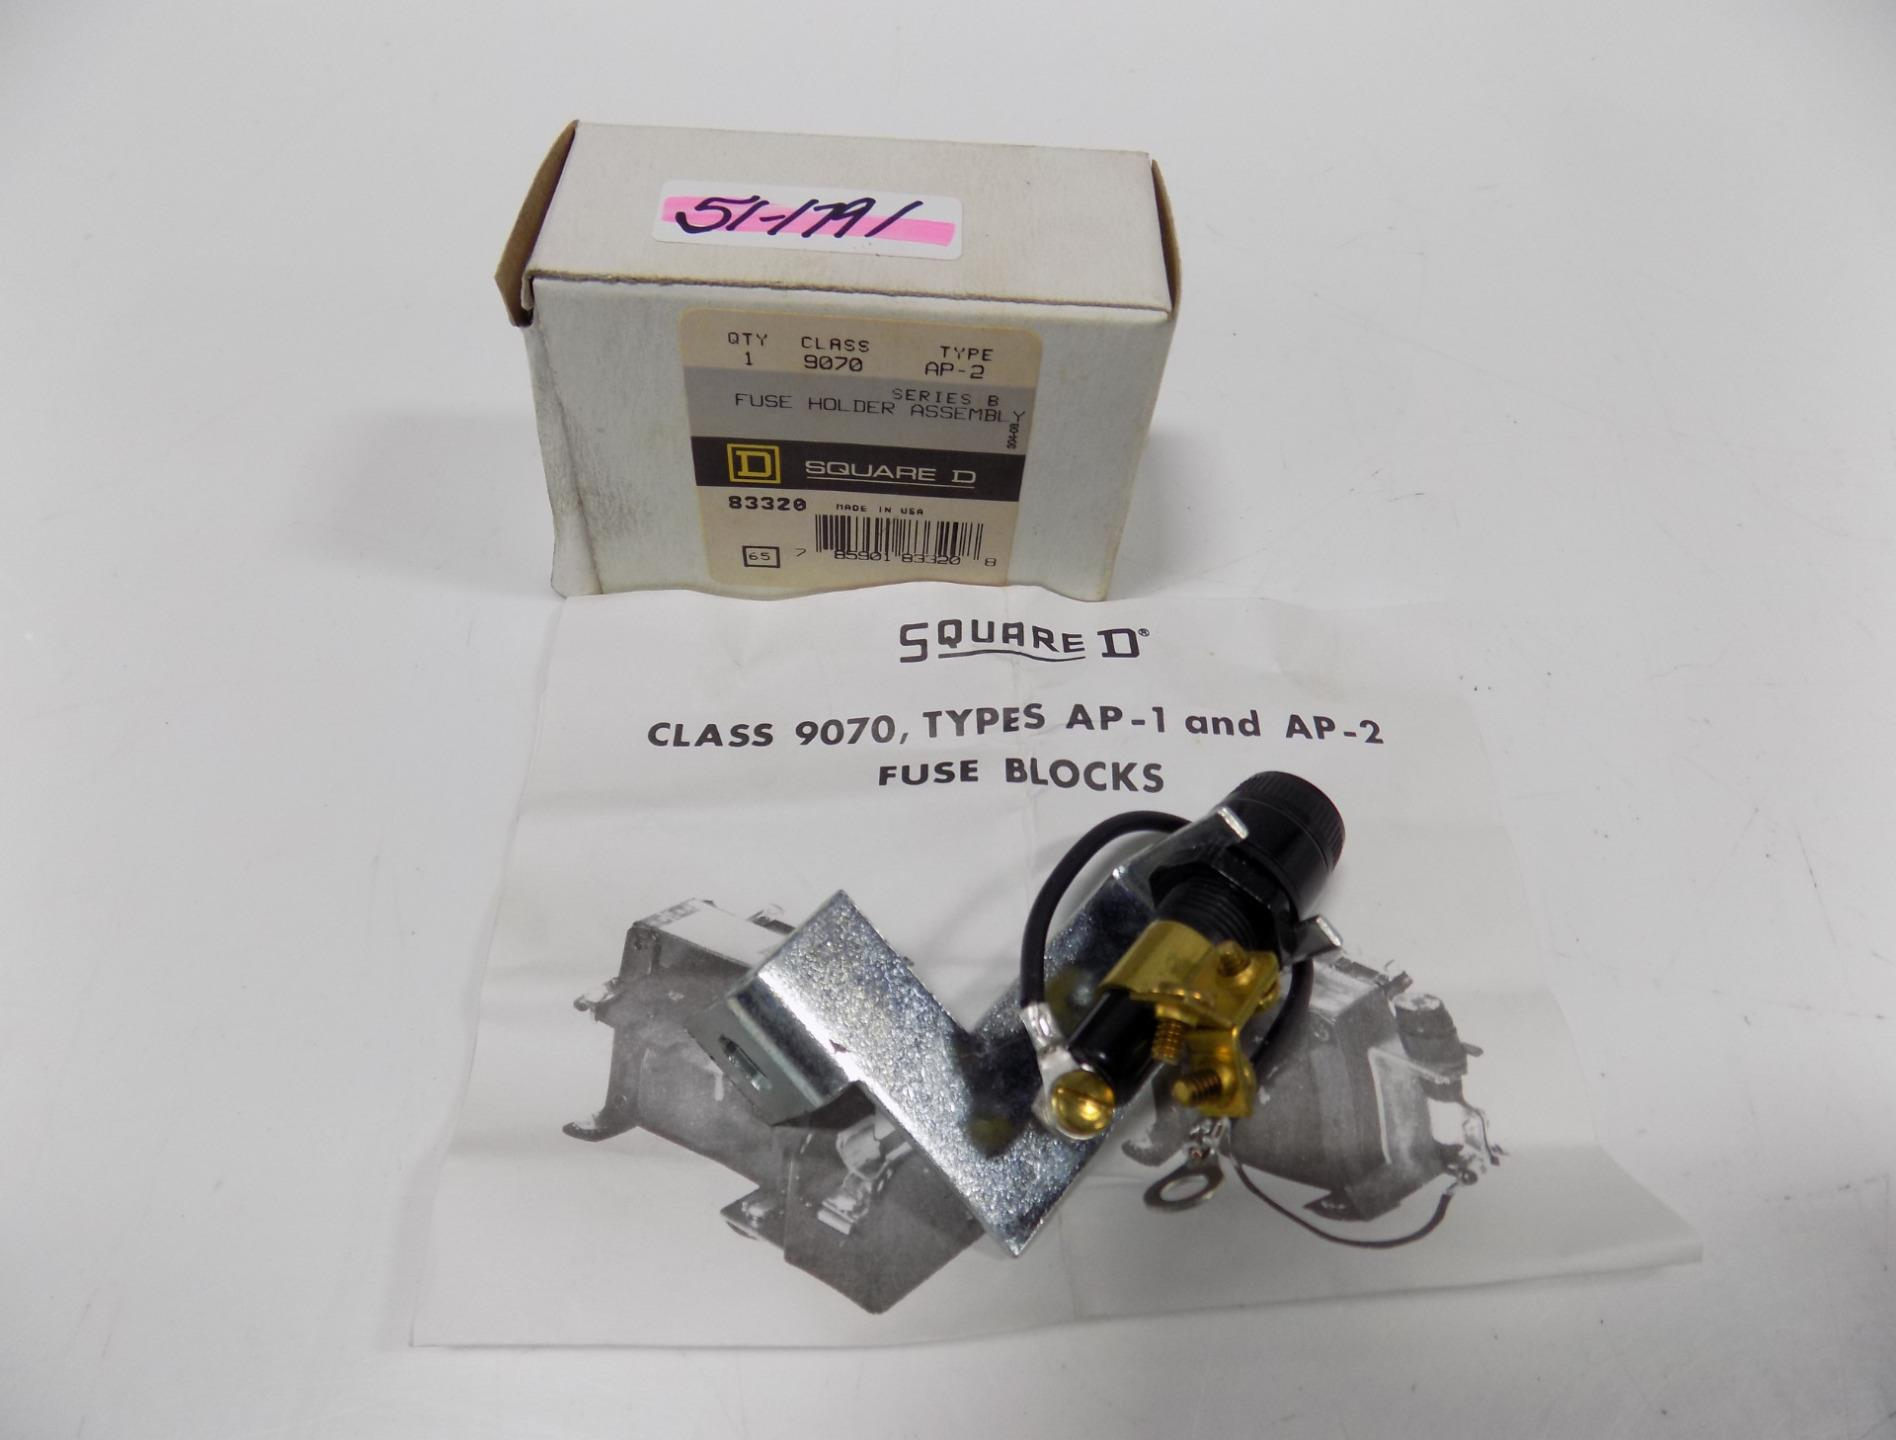 hight resolution of details about square d fuse holder assembly series b 9070 ap 2 nib